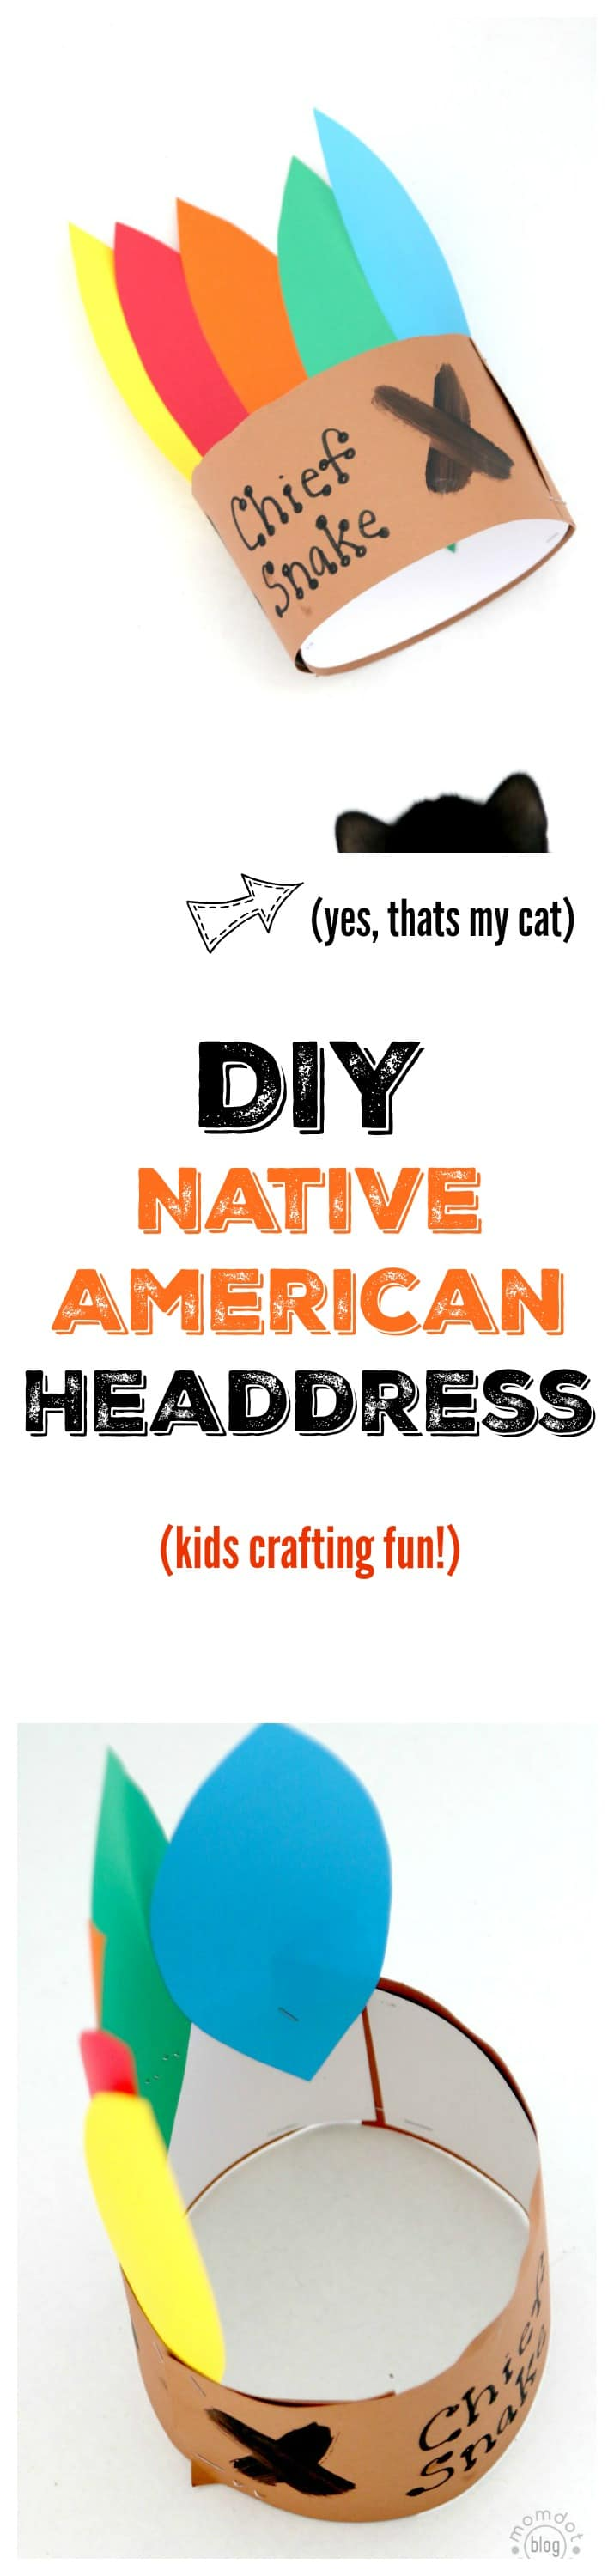 Chief Headdress : Thanksgiving Native American Headband, Practice cutting shapes and let kids name themselves